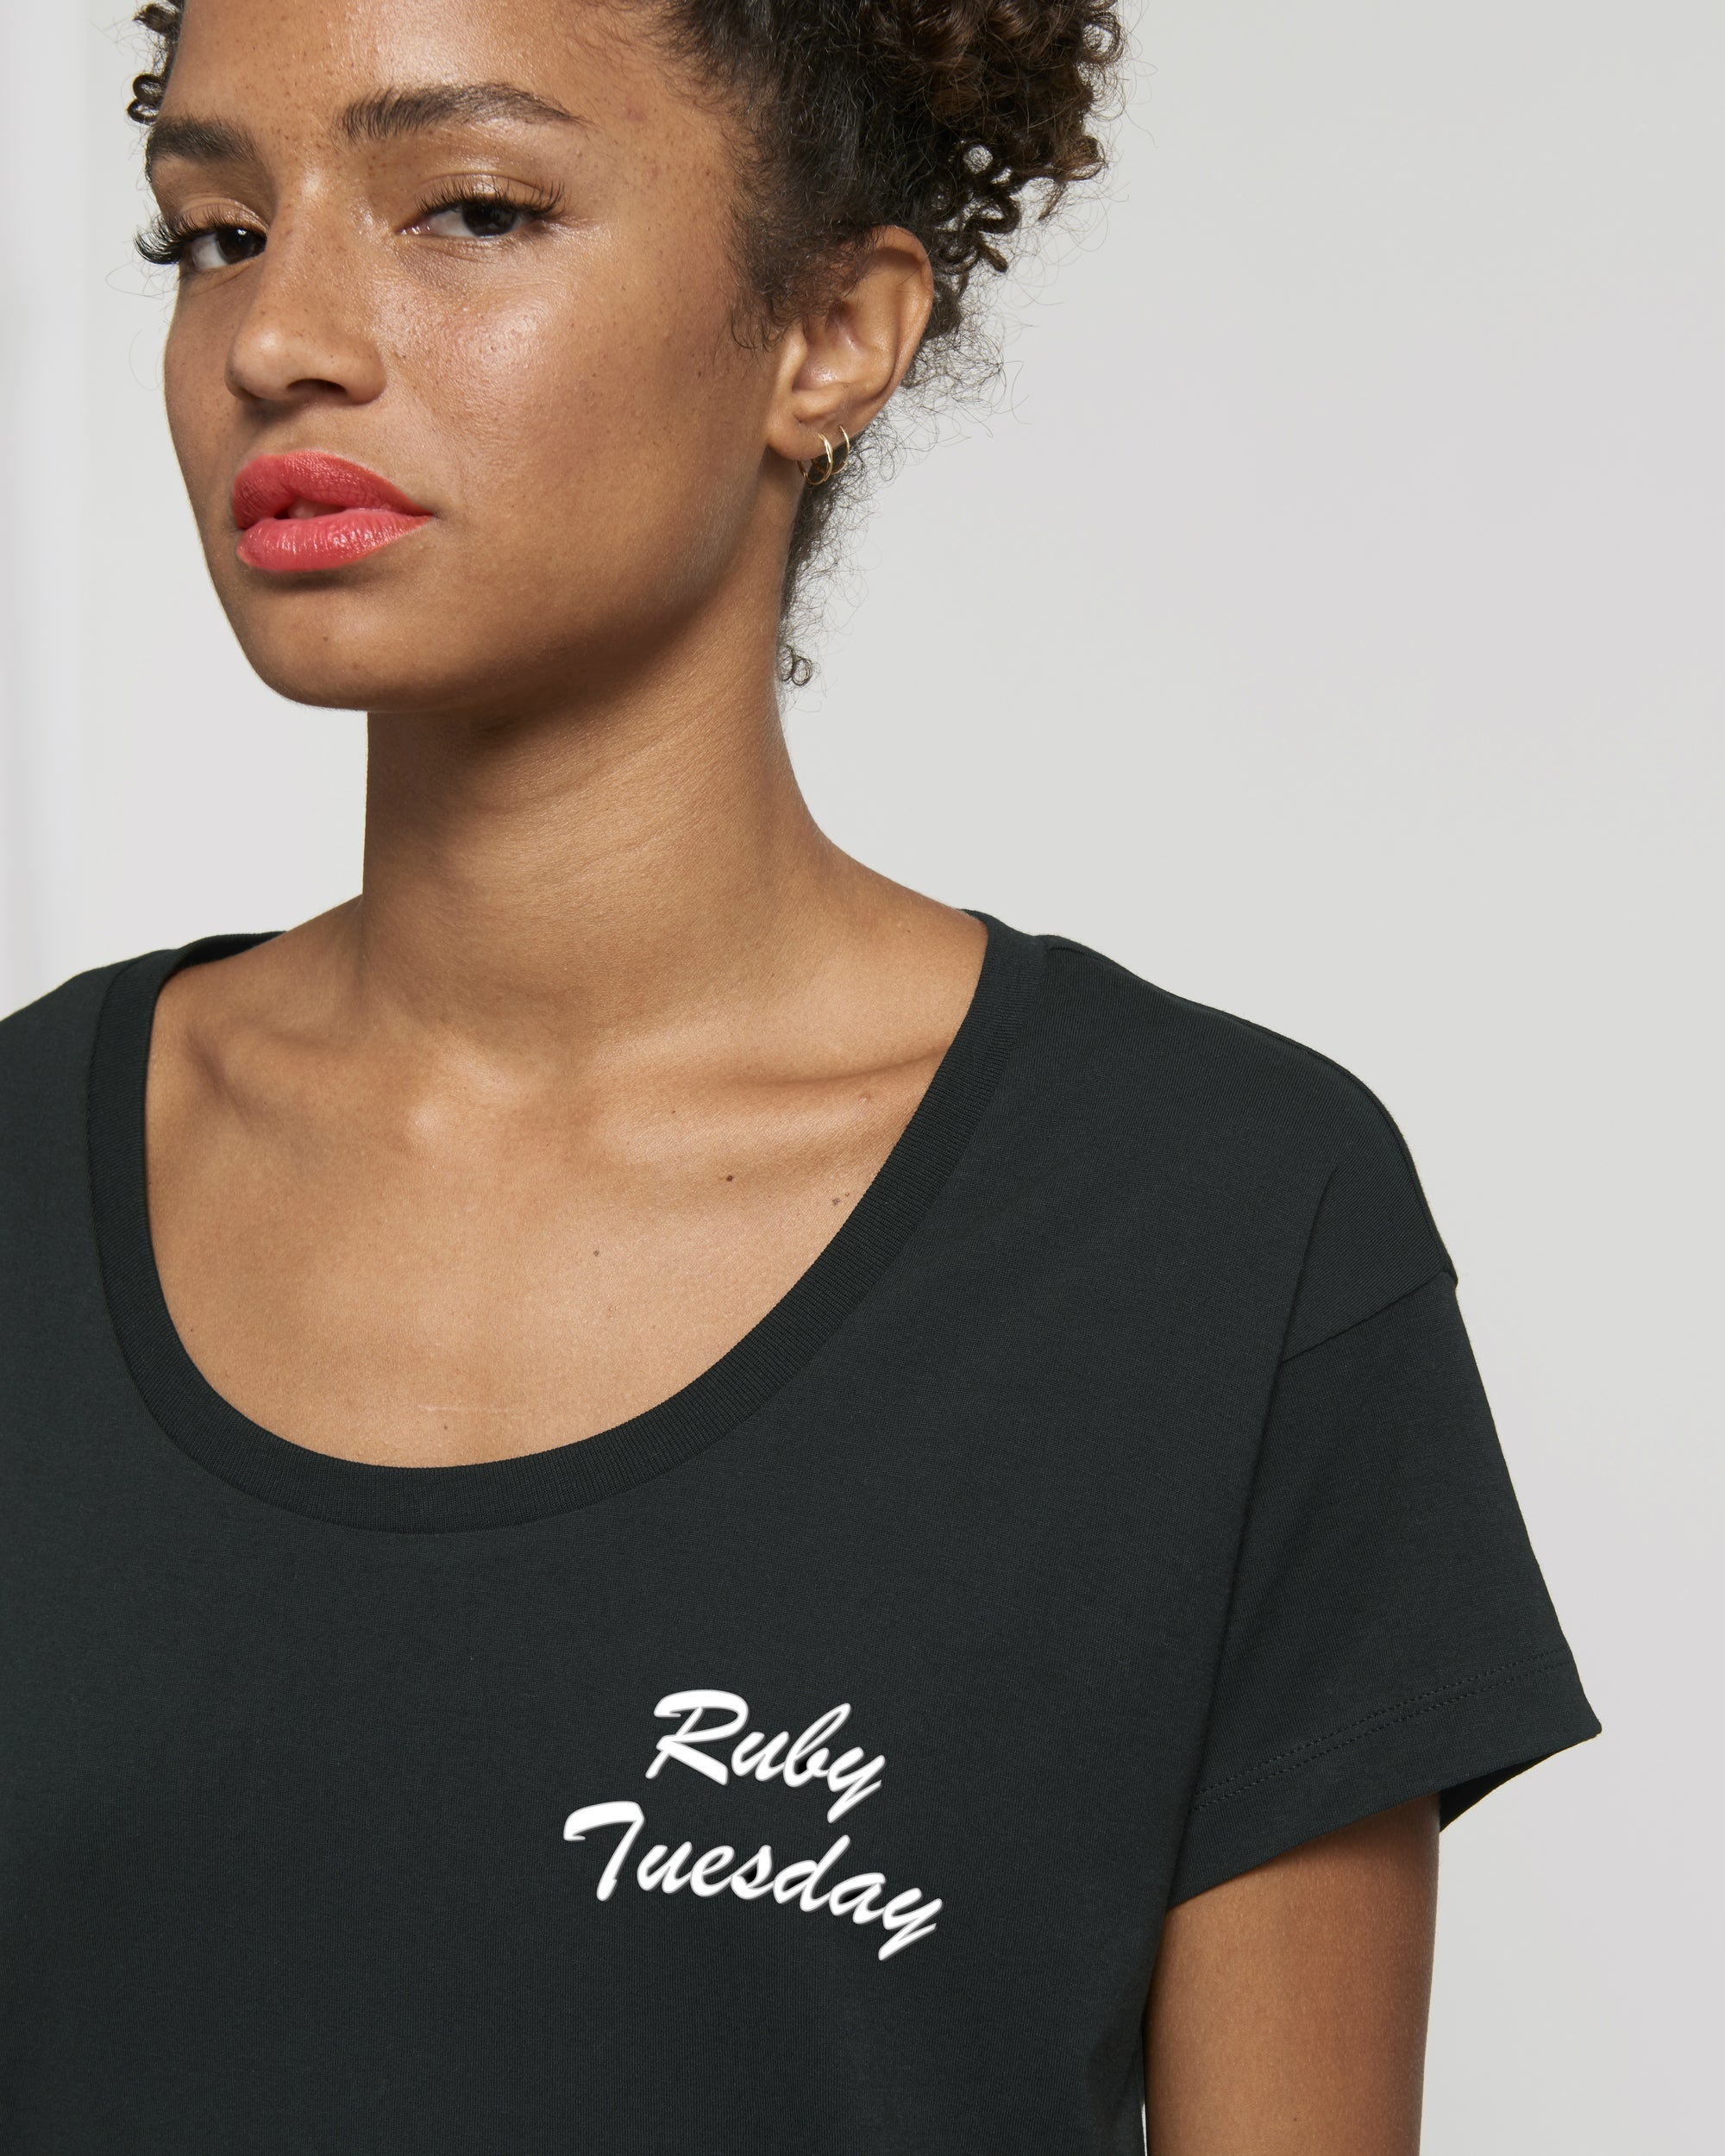 'RUBY TUESDAY' EMBROIDERED WOMEN'S SCOOP NECK RELAXED FIT ORGANIC COTTON T-SHIRT